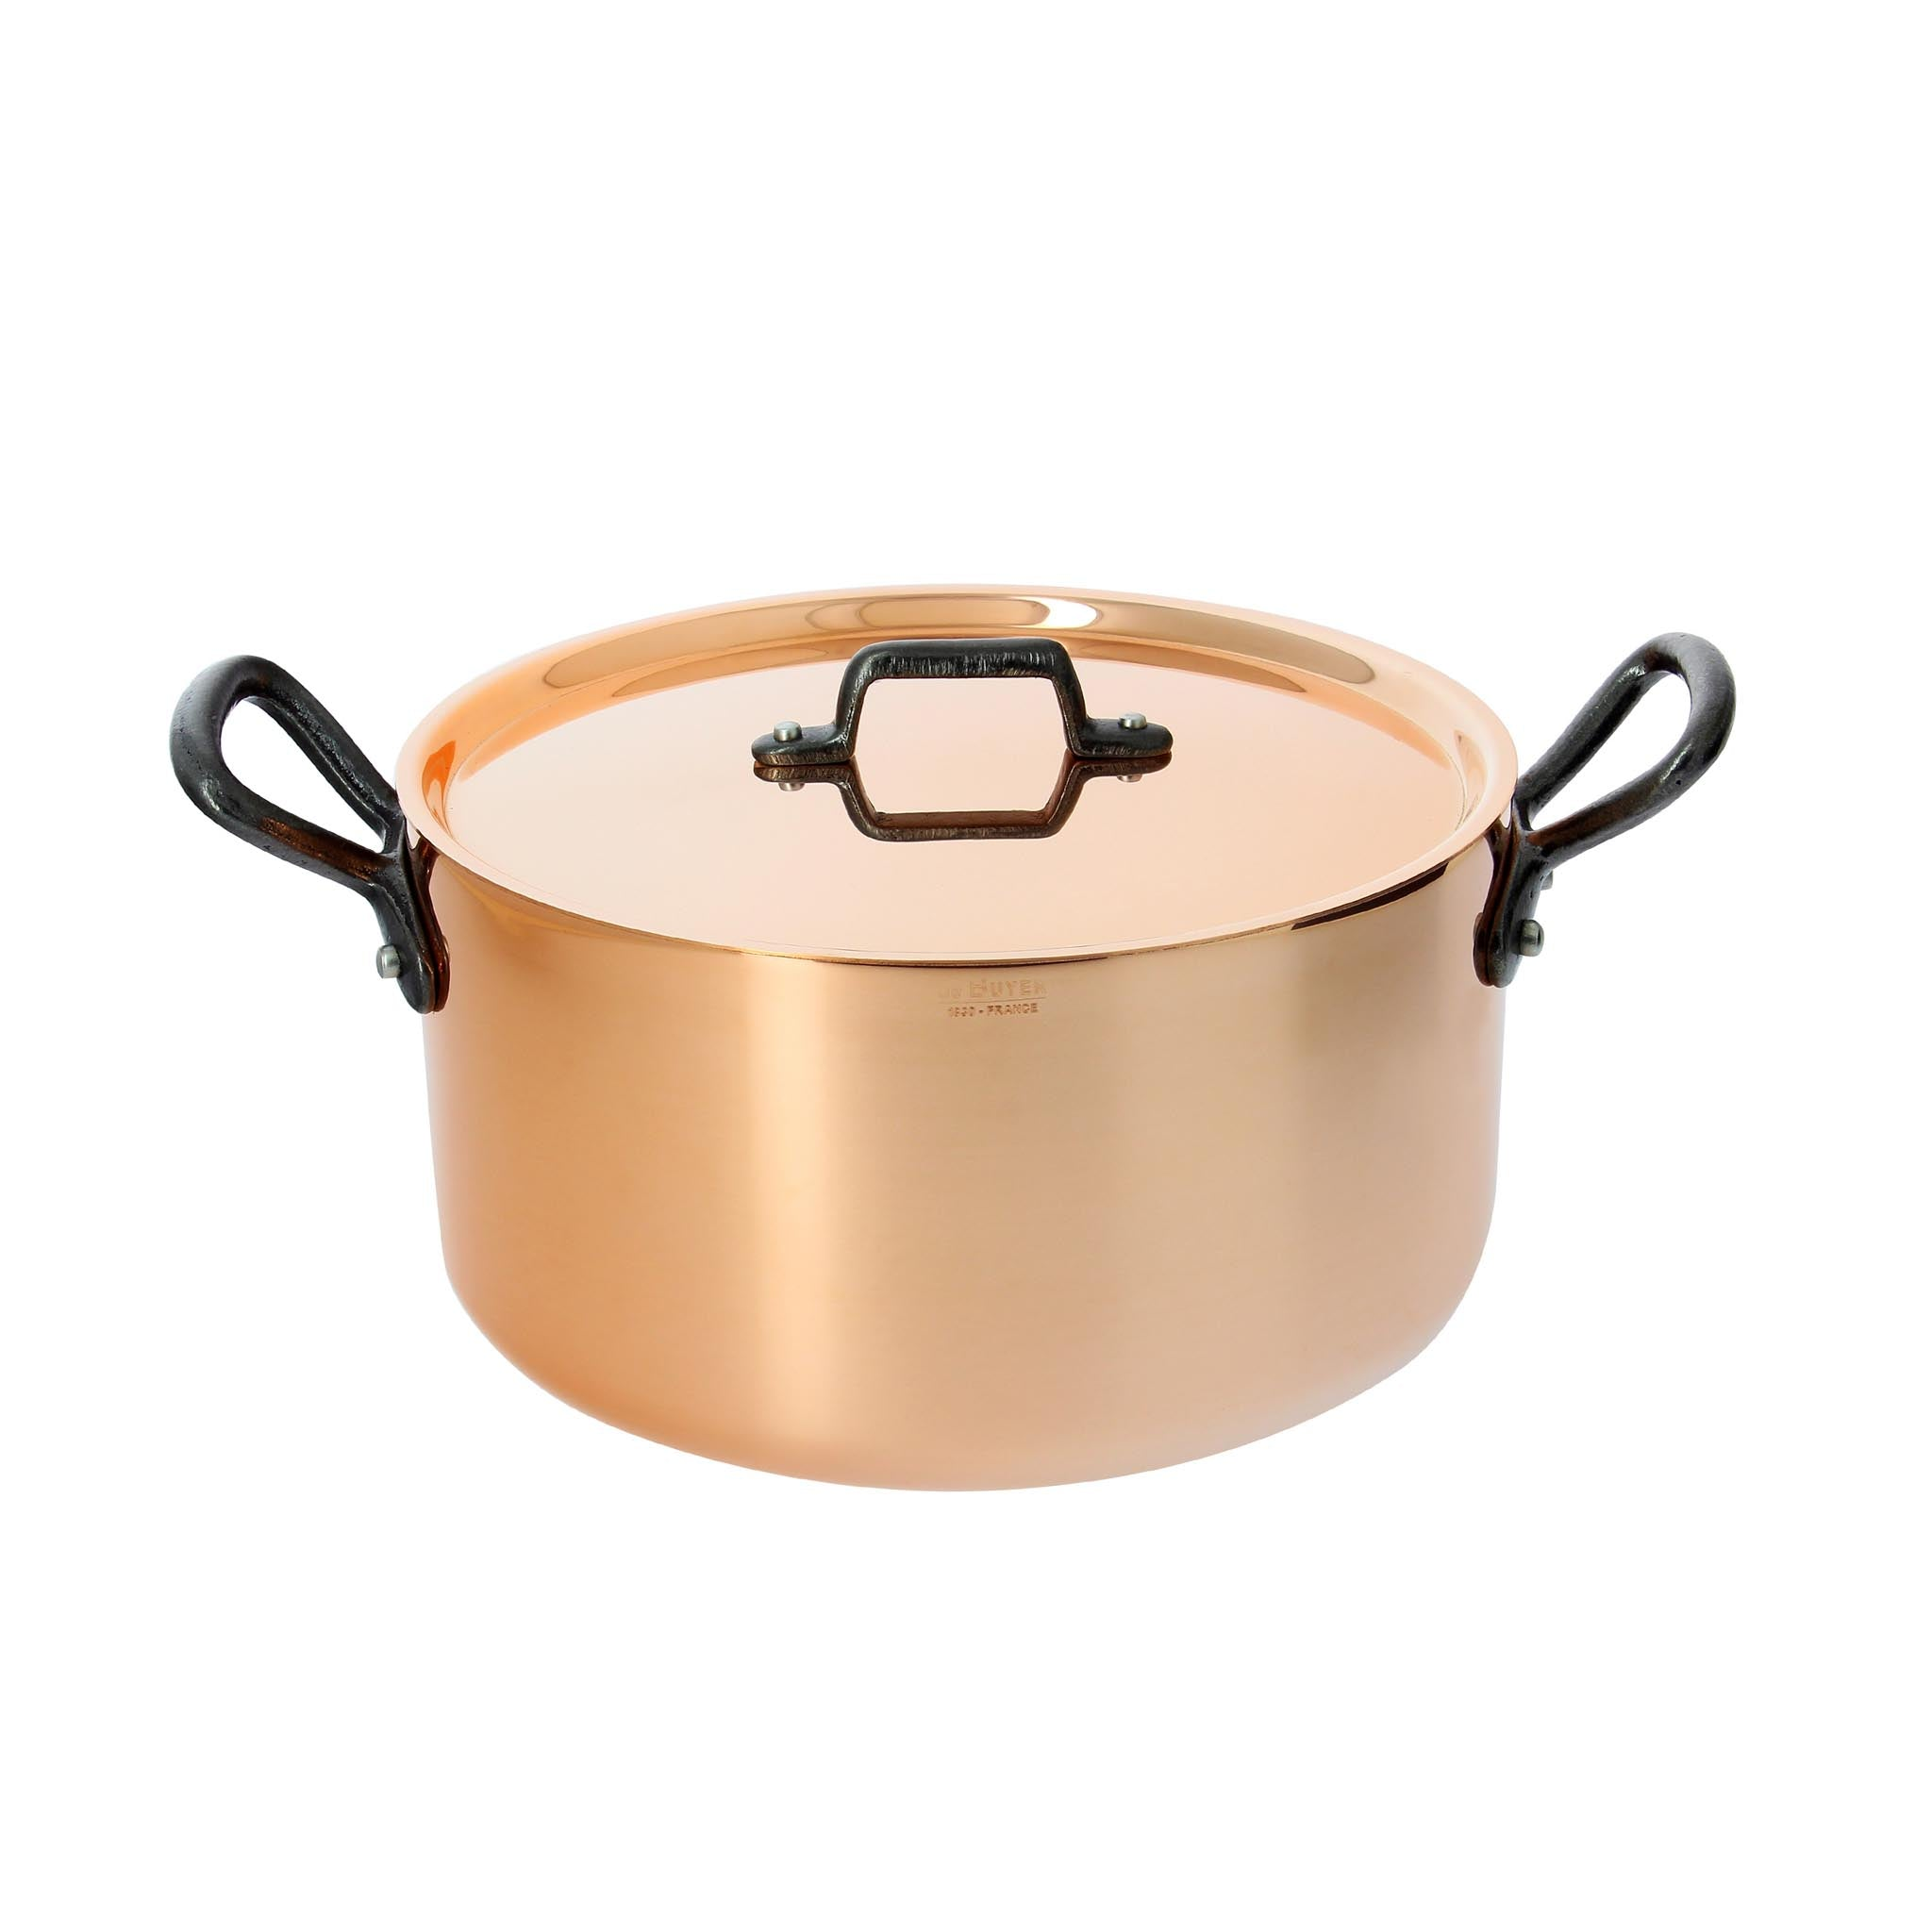 De Buyer Prima Matera Induction Copper Casserole Pan Cookware Pots & Pans French Food